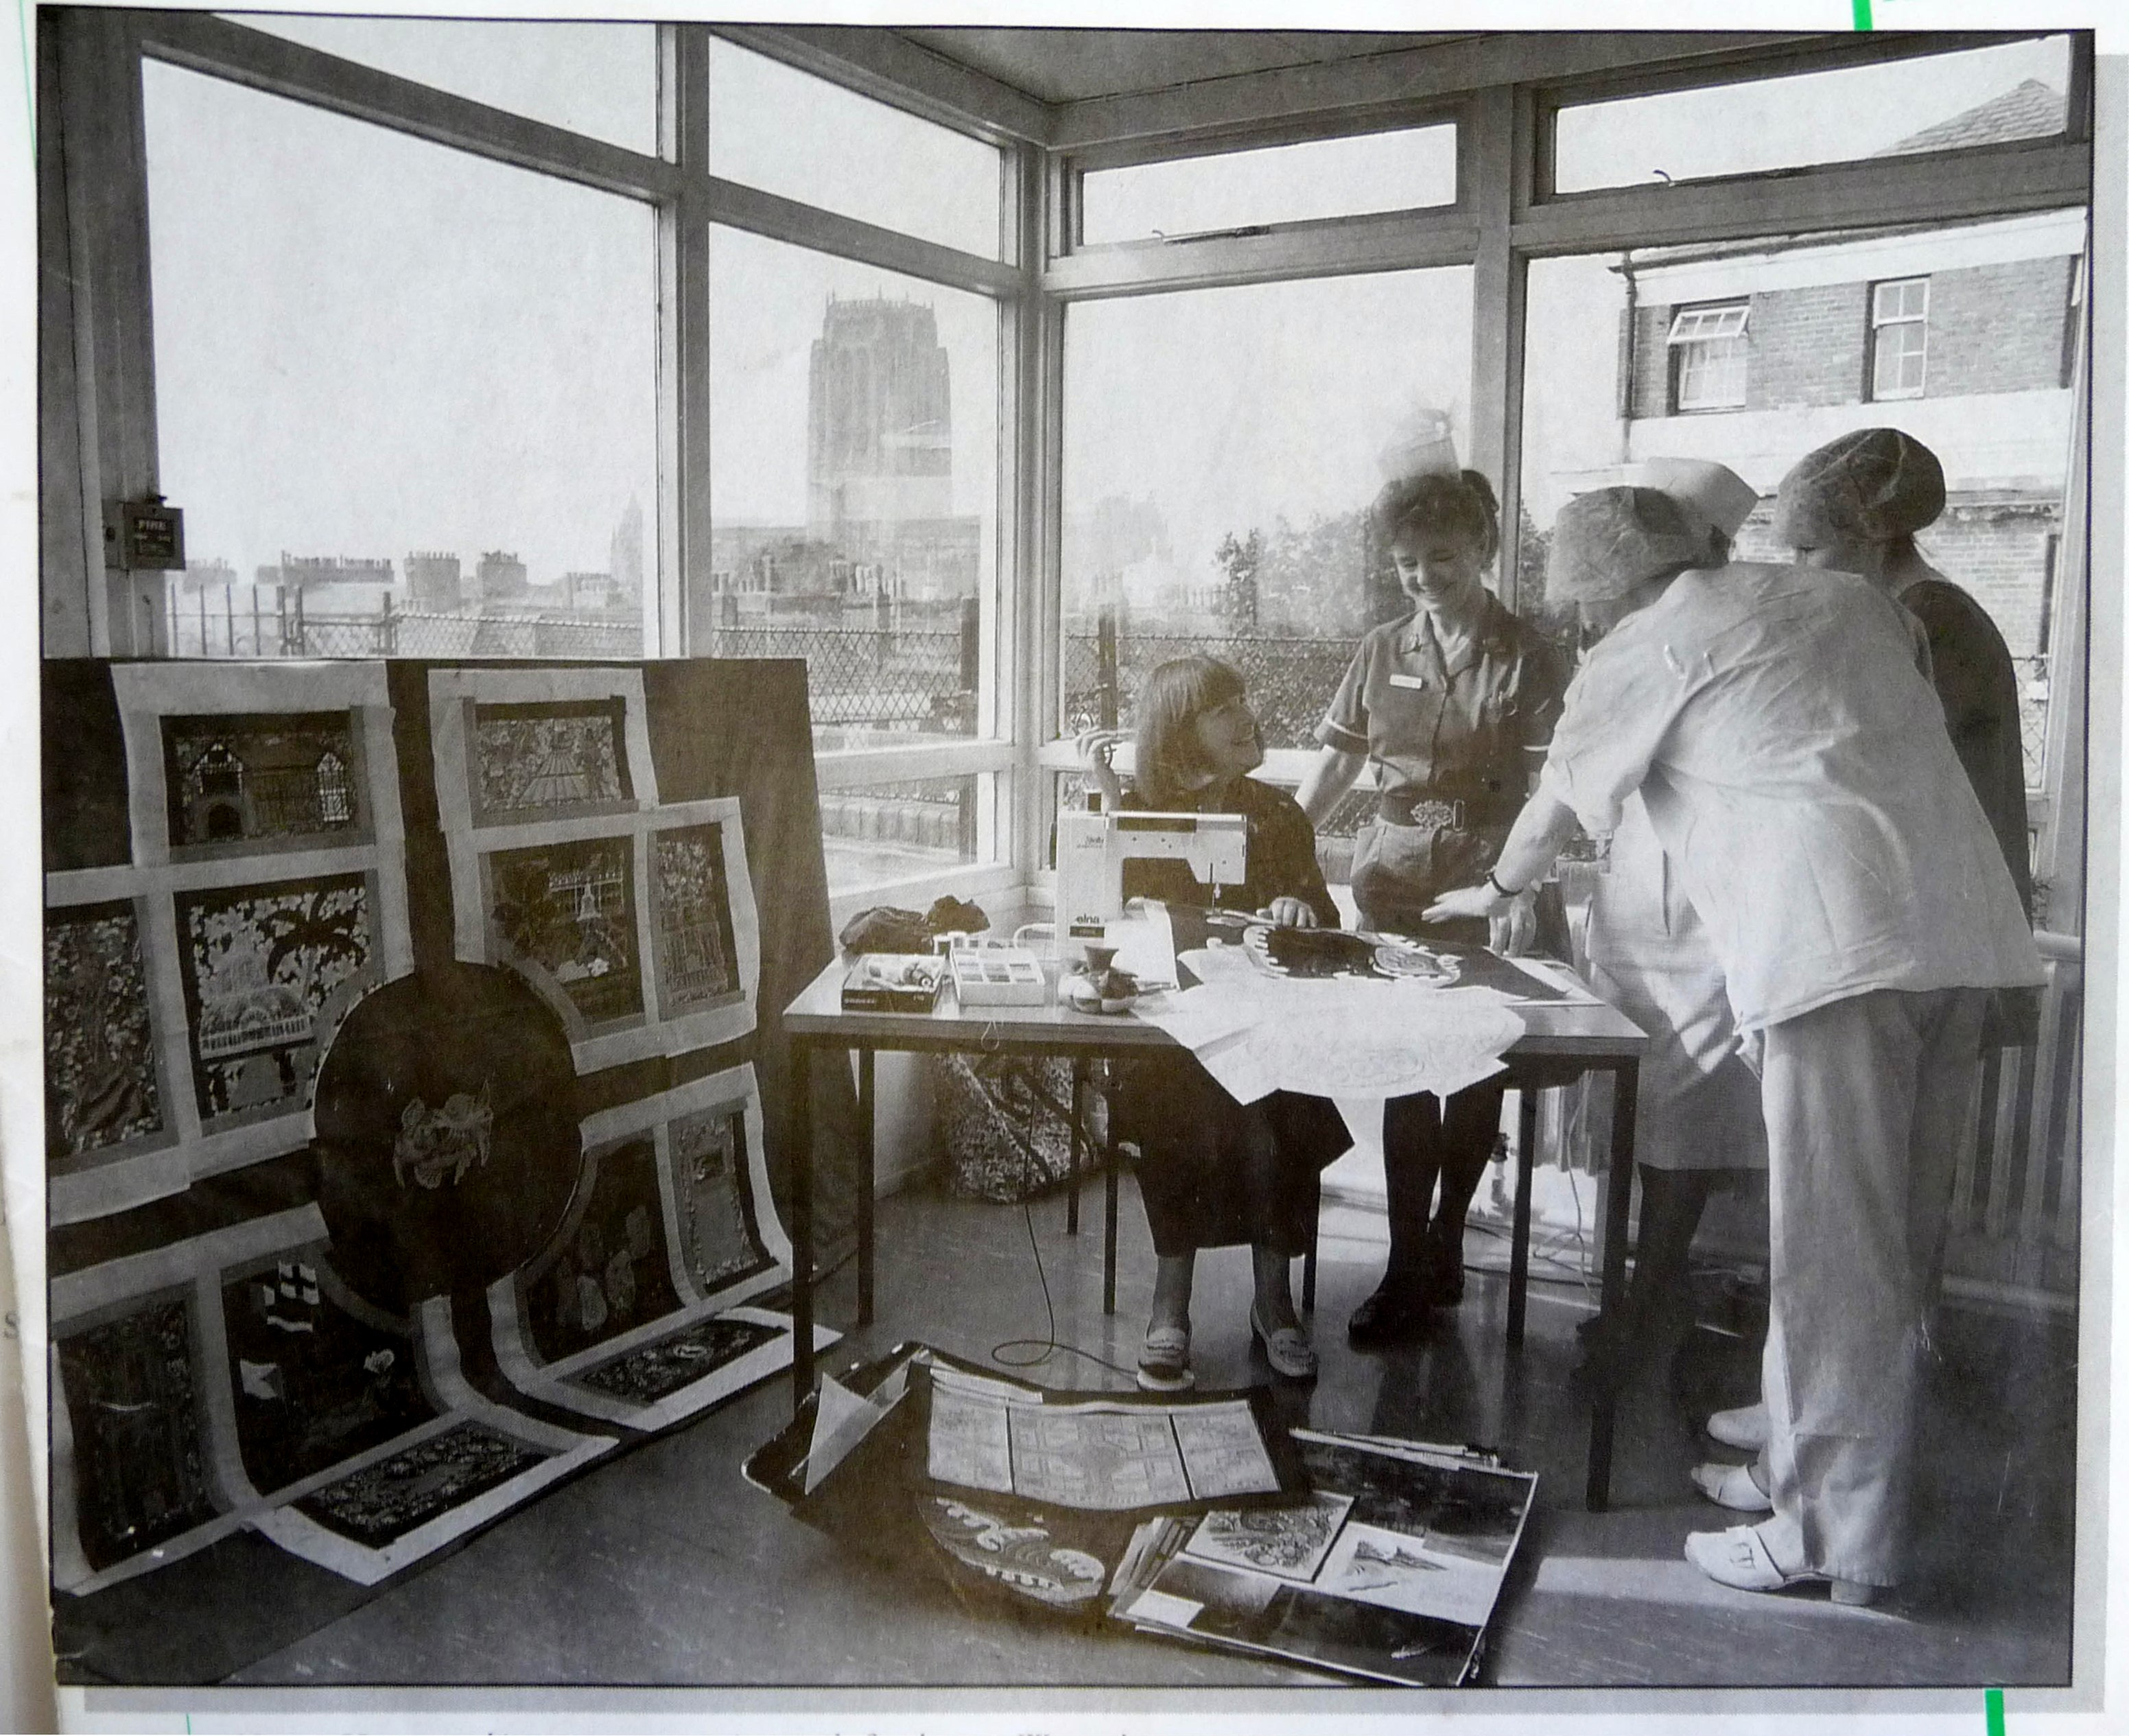 1995 newspaper picture of Norma Heron working on THE POOL OF LIFE embroidered hanging in Womens Hospital, Liverpool